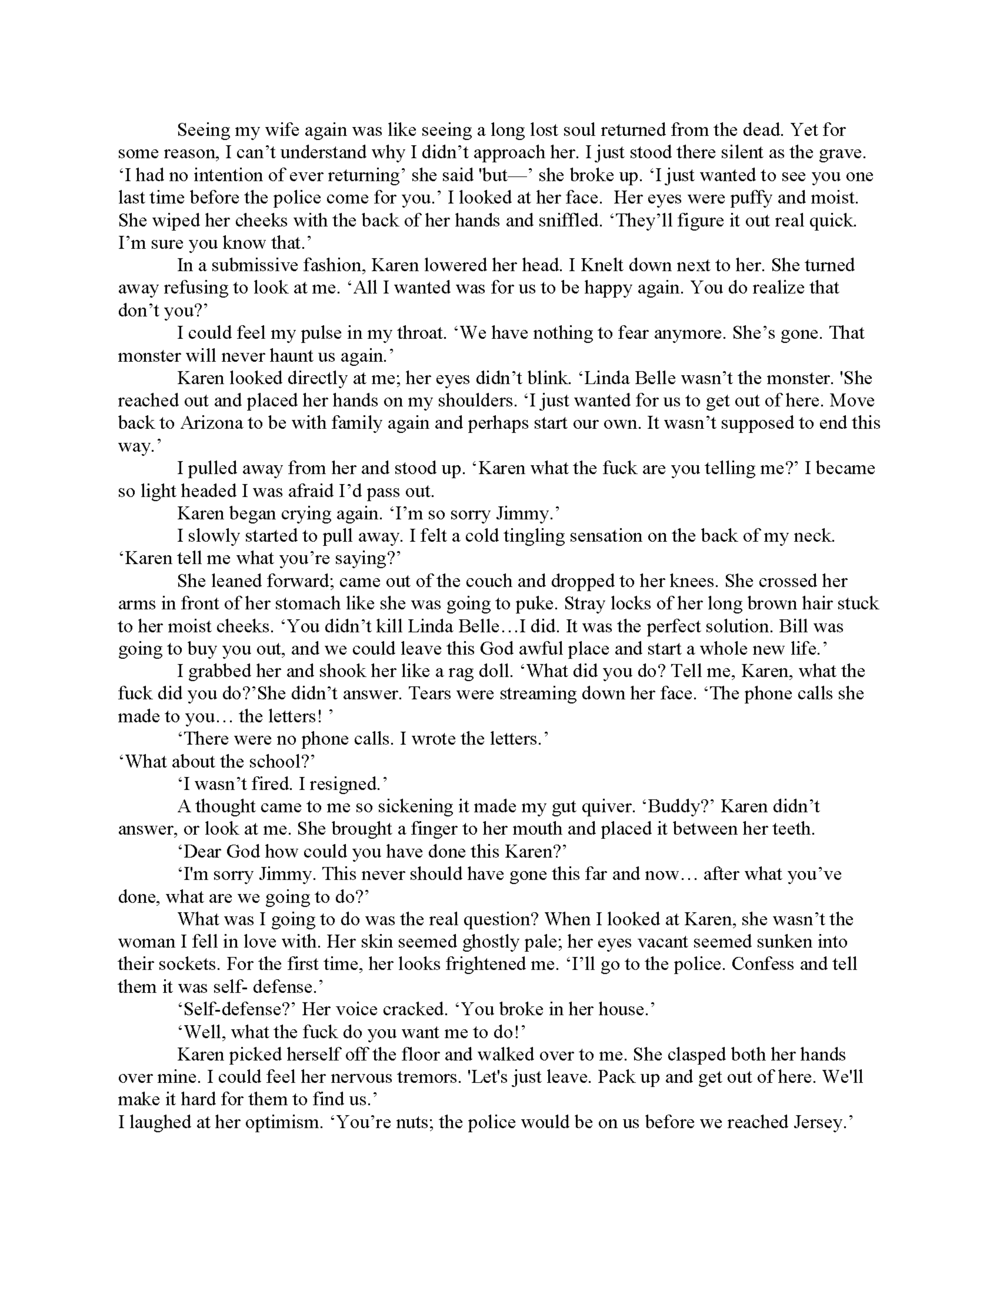 102-Second Prayer Full Story_Page_15.png